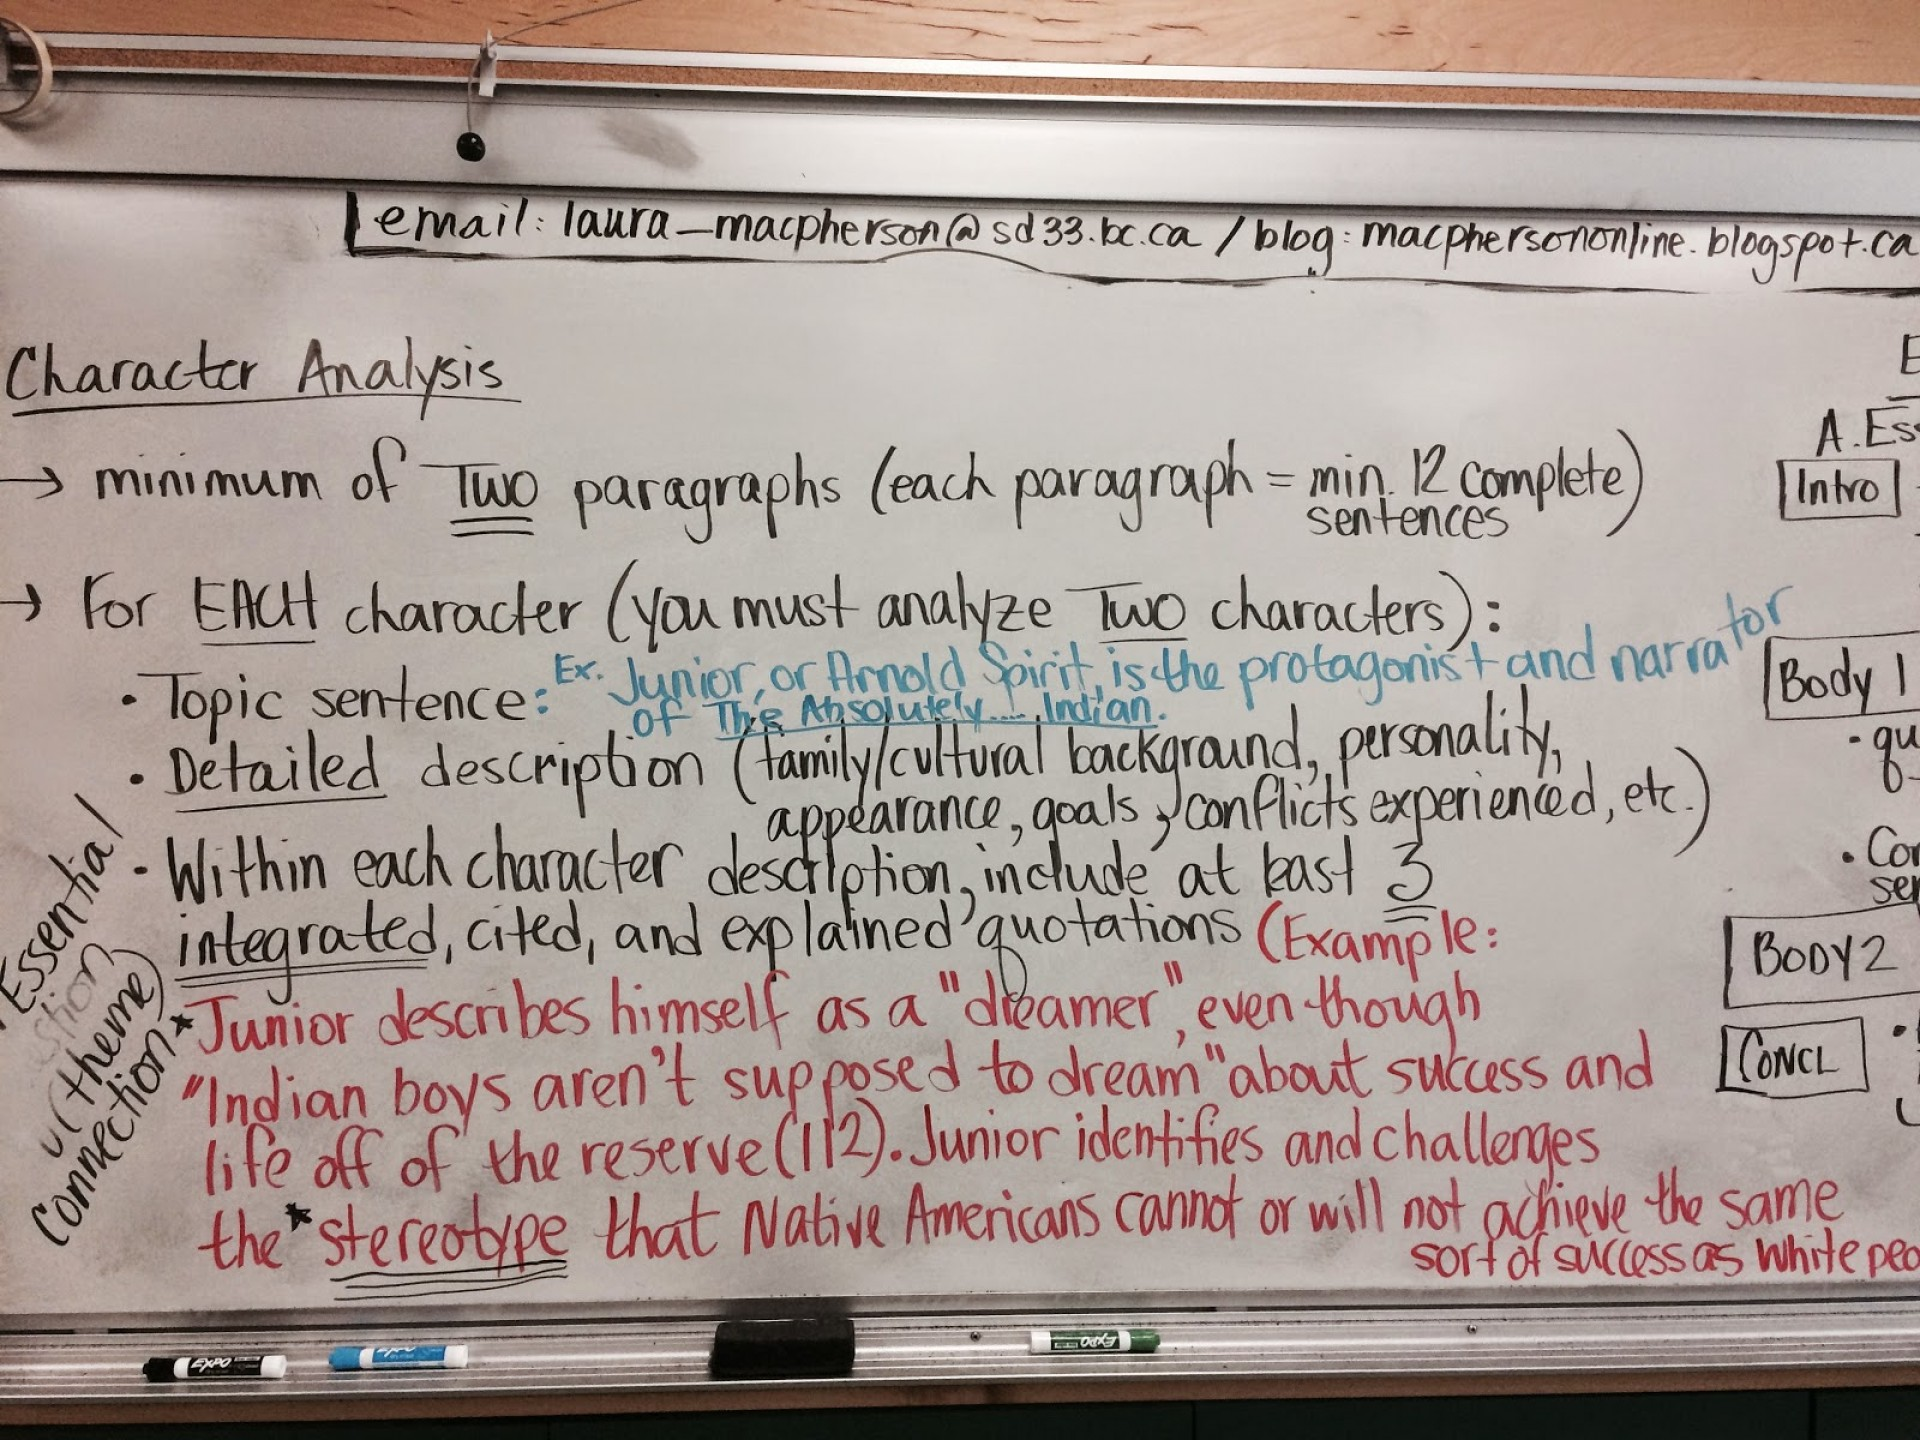 009 Img 4576 Jpg The Crucible Essay Topics Shocking Topic Sentences Analytical Writing Prompts 1920